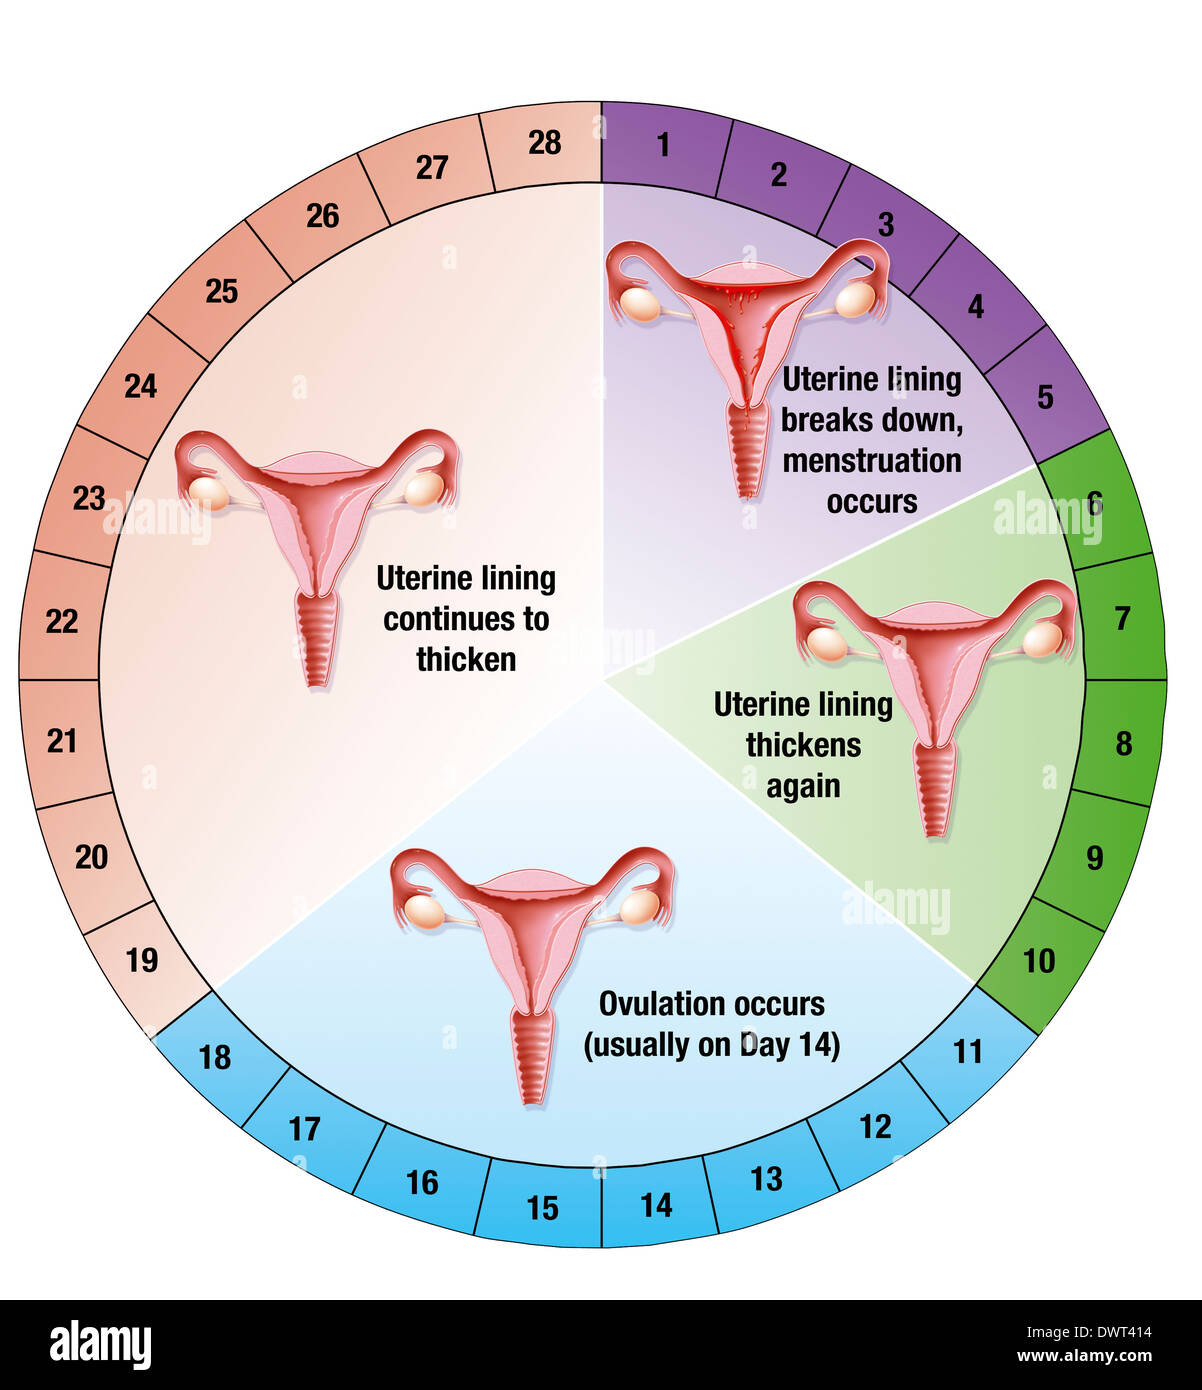 menstrual cycle diagram with ovulation vauxhall stereo wiring drawing stock photo 67527520 alamy